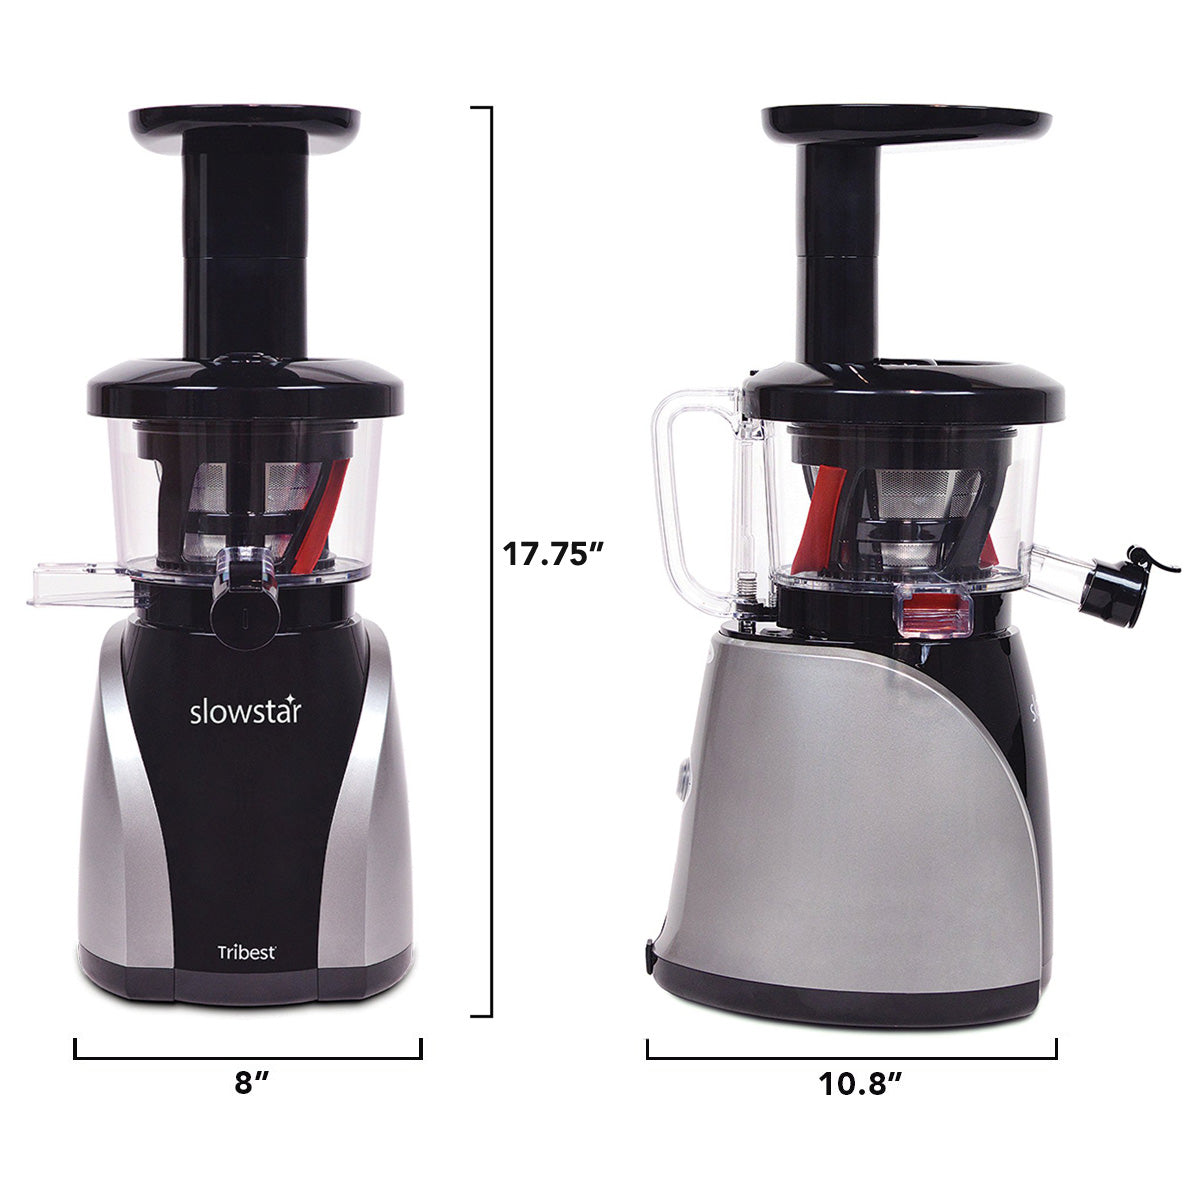 Slowstar Vertical Slow Juicer & Mincer in Silver SW-2020-B - Size 8